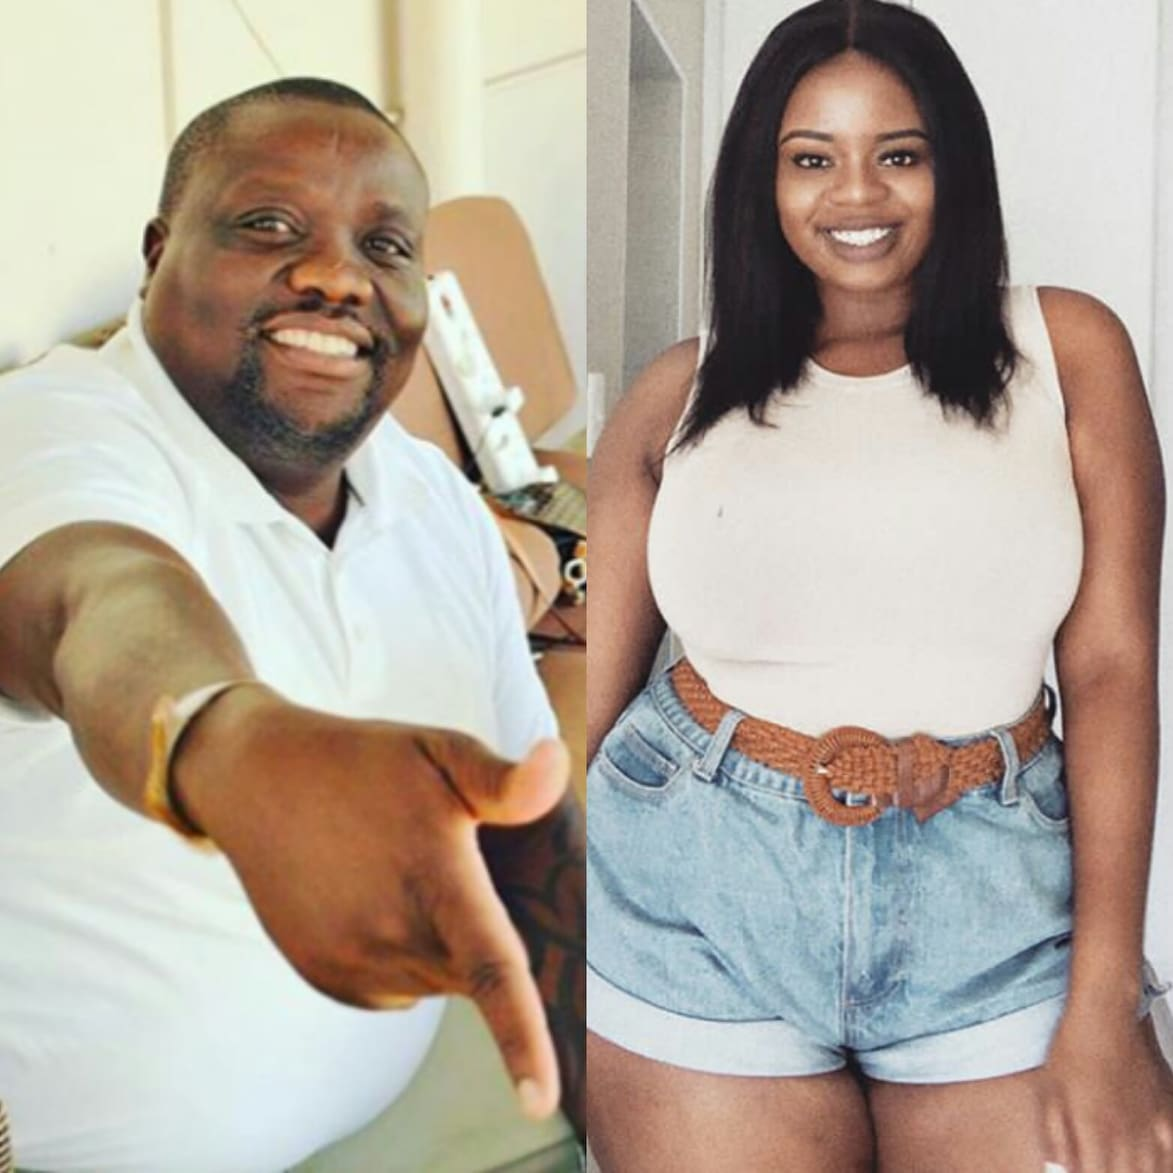 L'vovo Opens Up About His Crush On Thickleeyonce